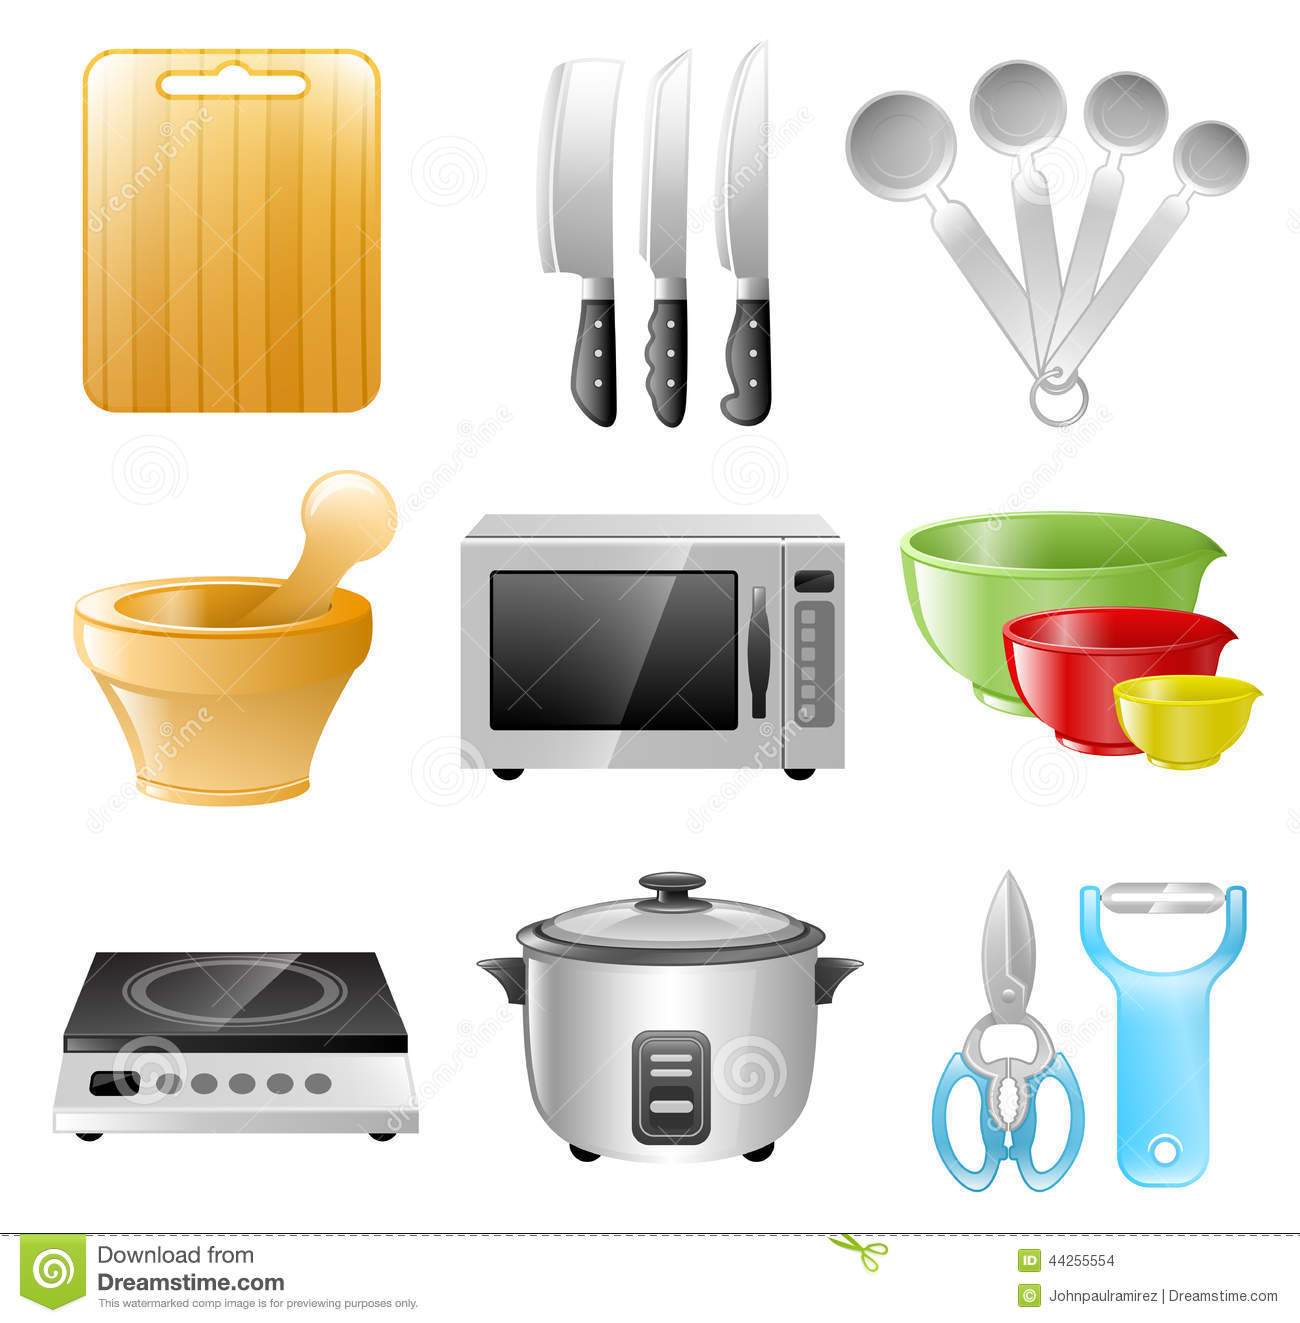 Restaurant Kitchen Utensils kitchen utensils, cooking, restaurant stock vector - image: 44255554